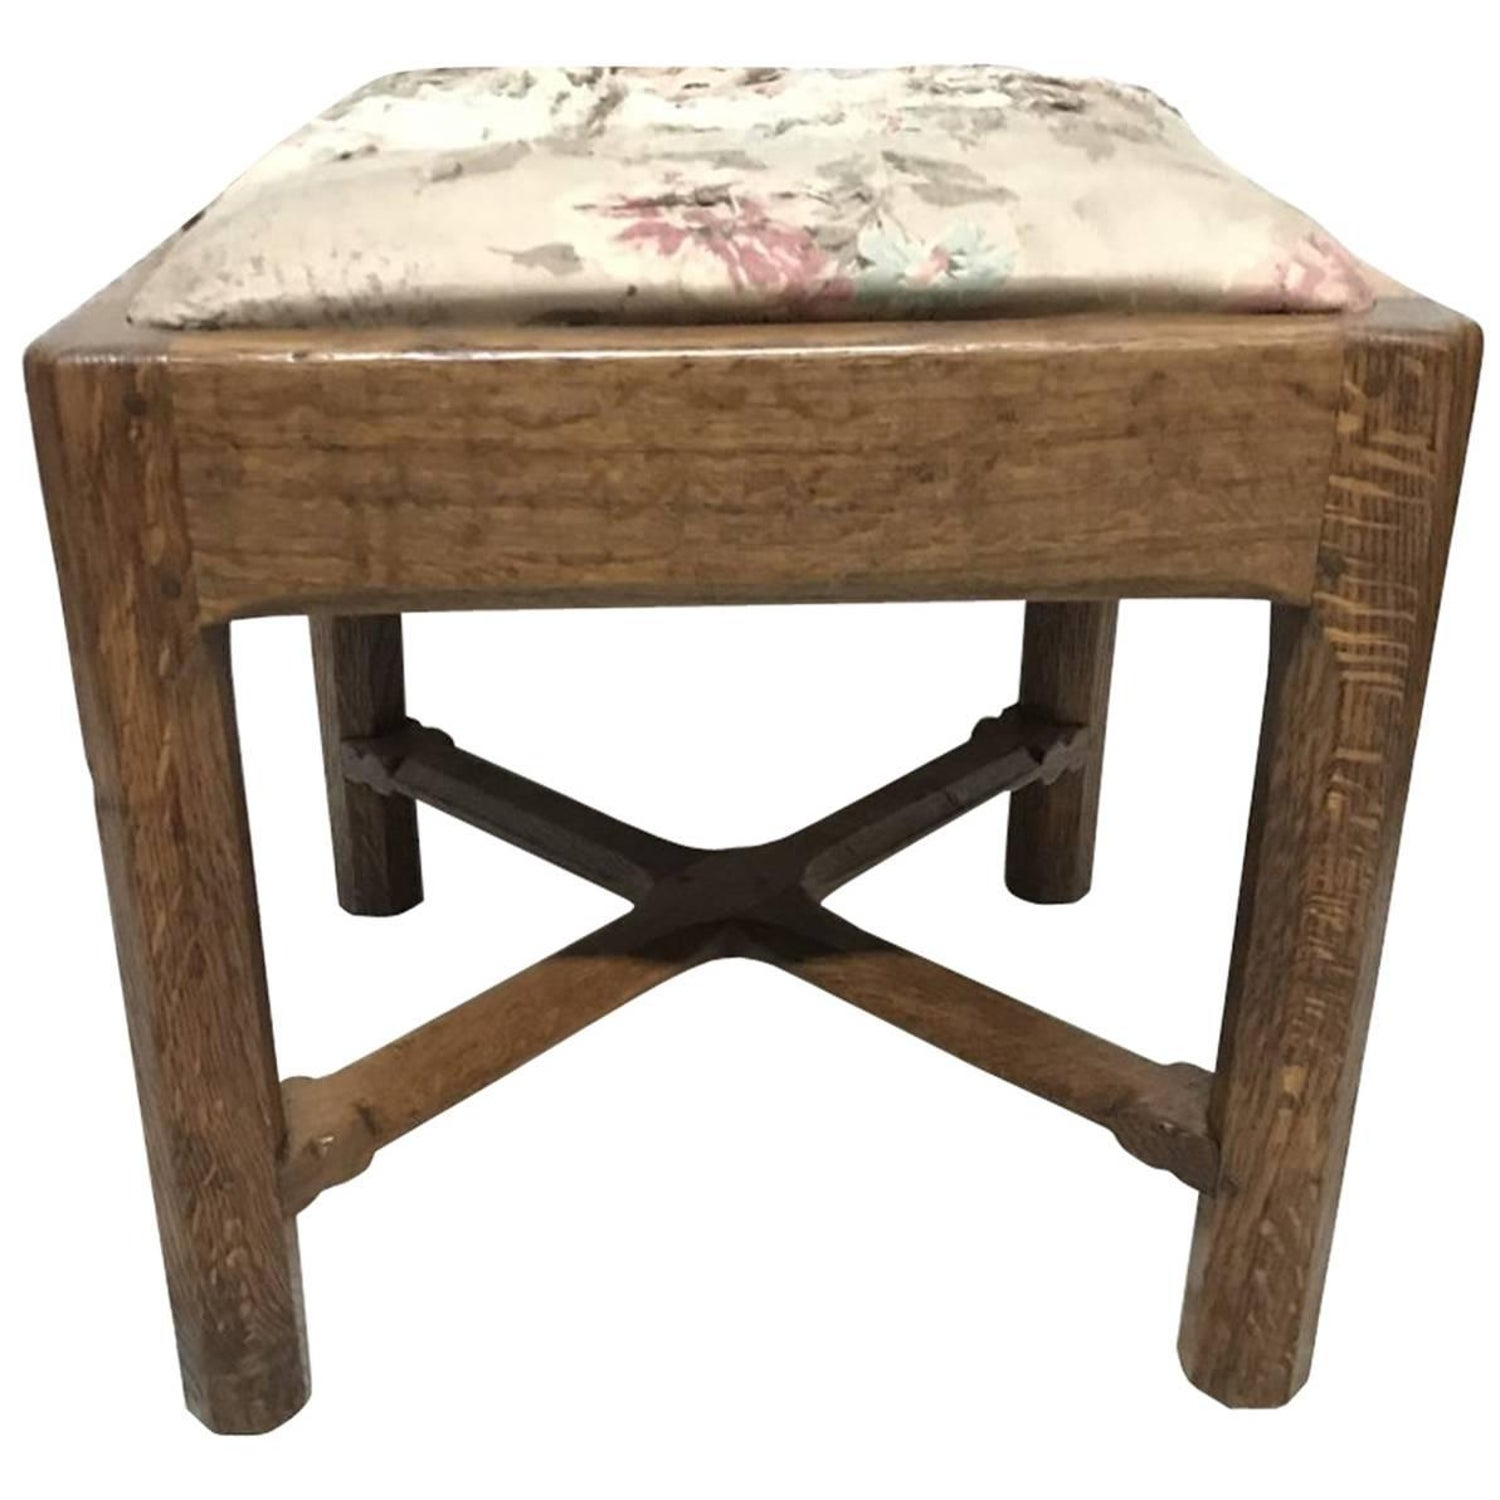 Surprising Gordon Russell An Arts Crafts Cotswold Oak Stool With Carved Cross Stretcher Alphanode Cool Chair Designs And Ideas Alphanodeonline